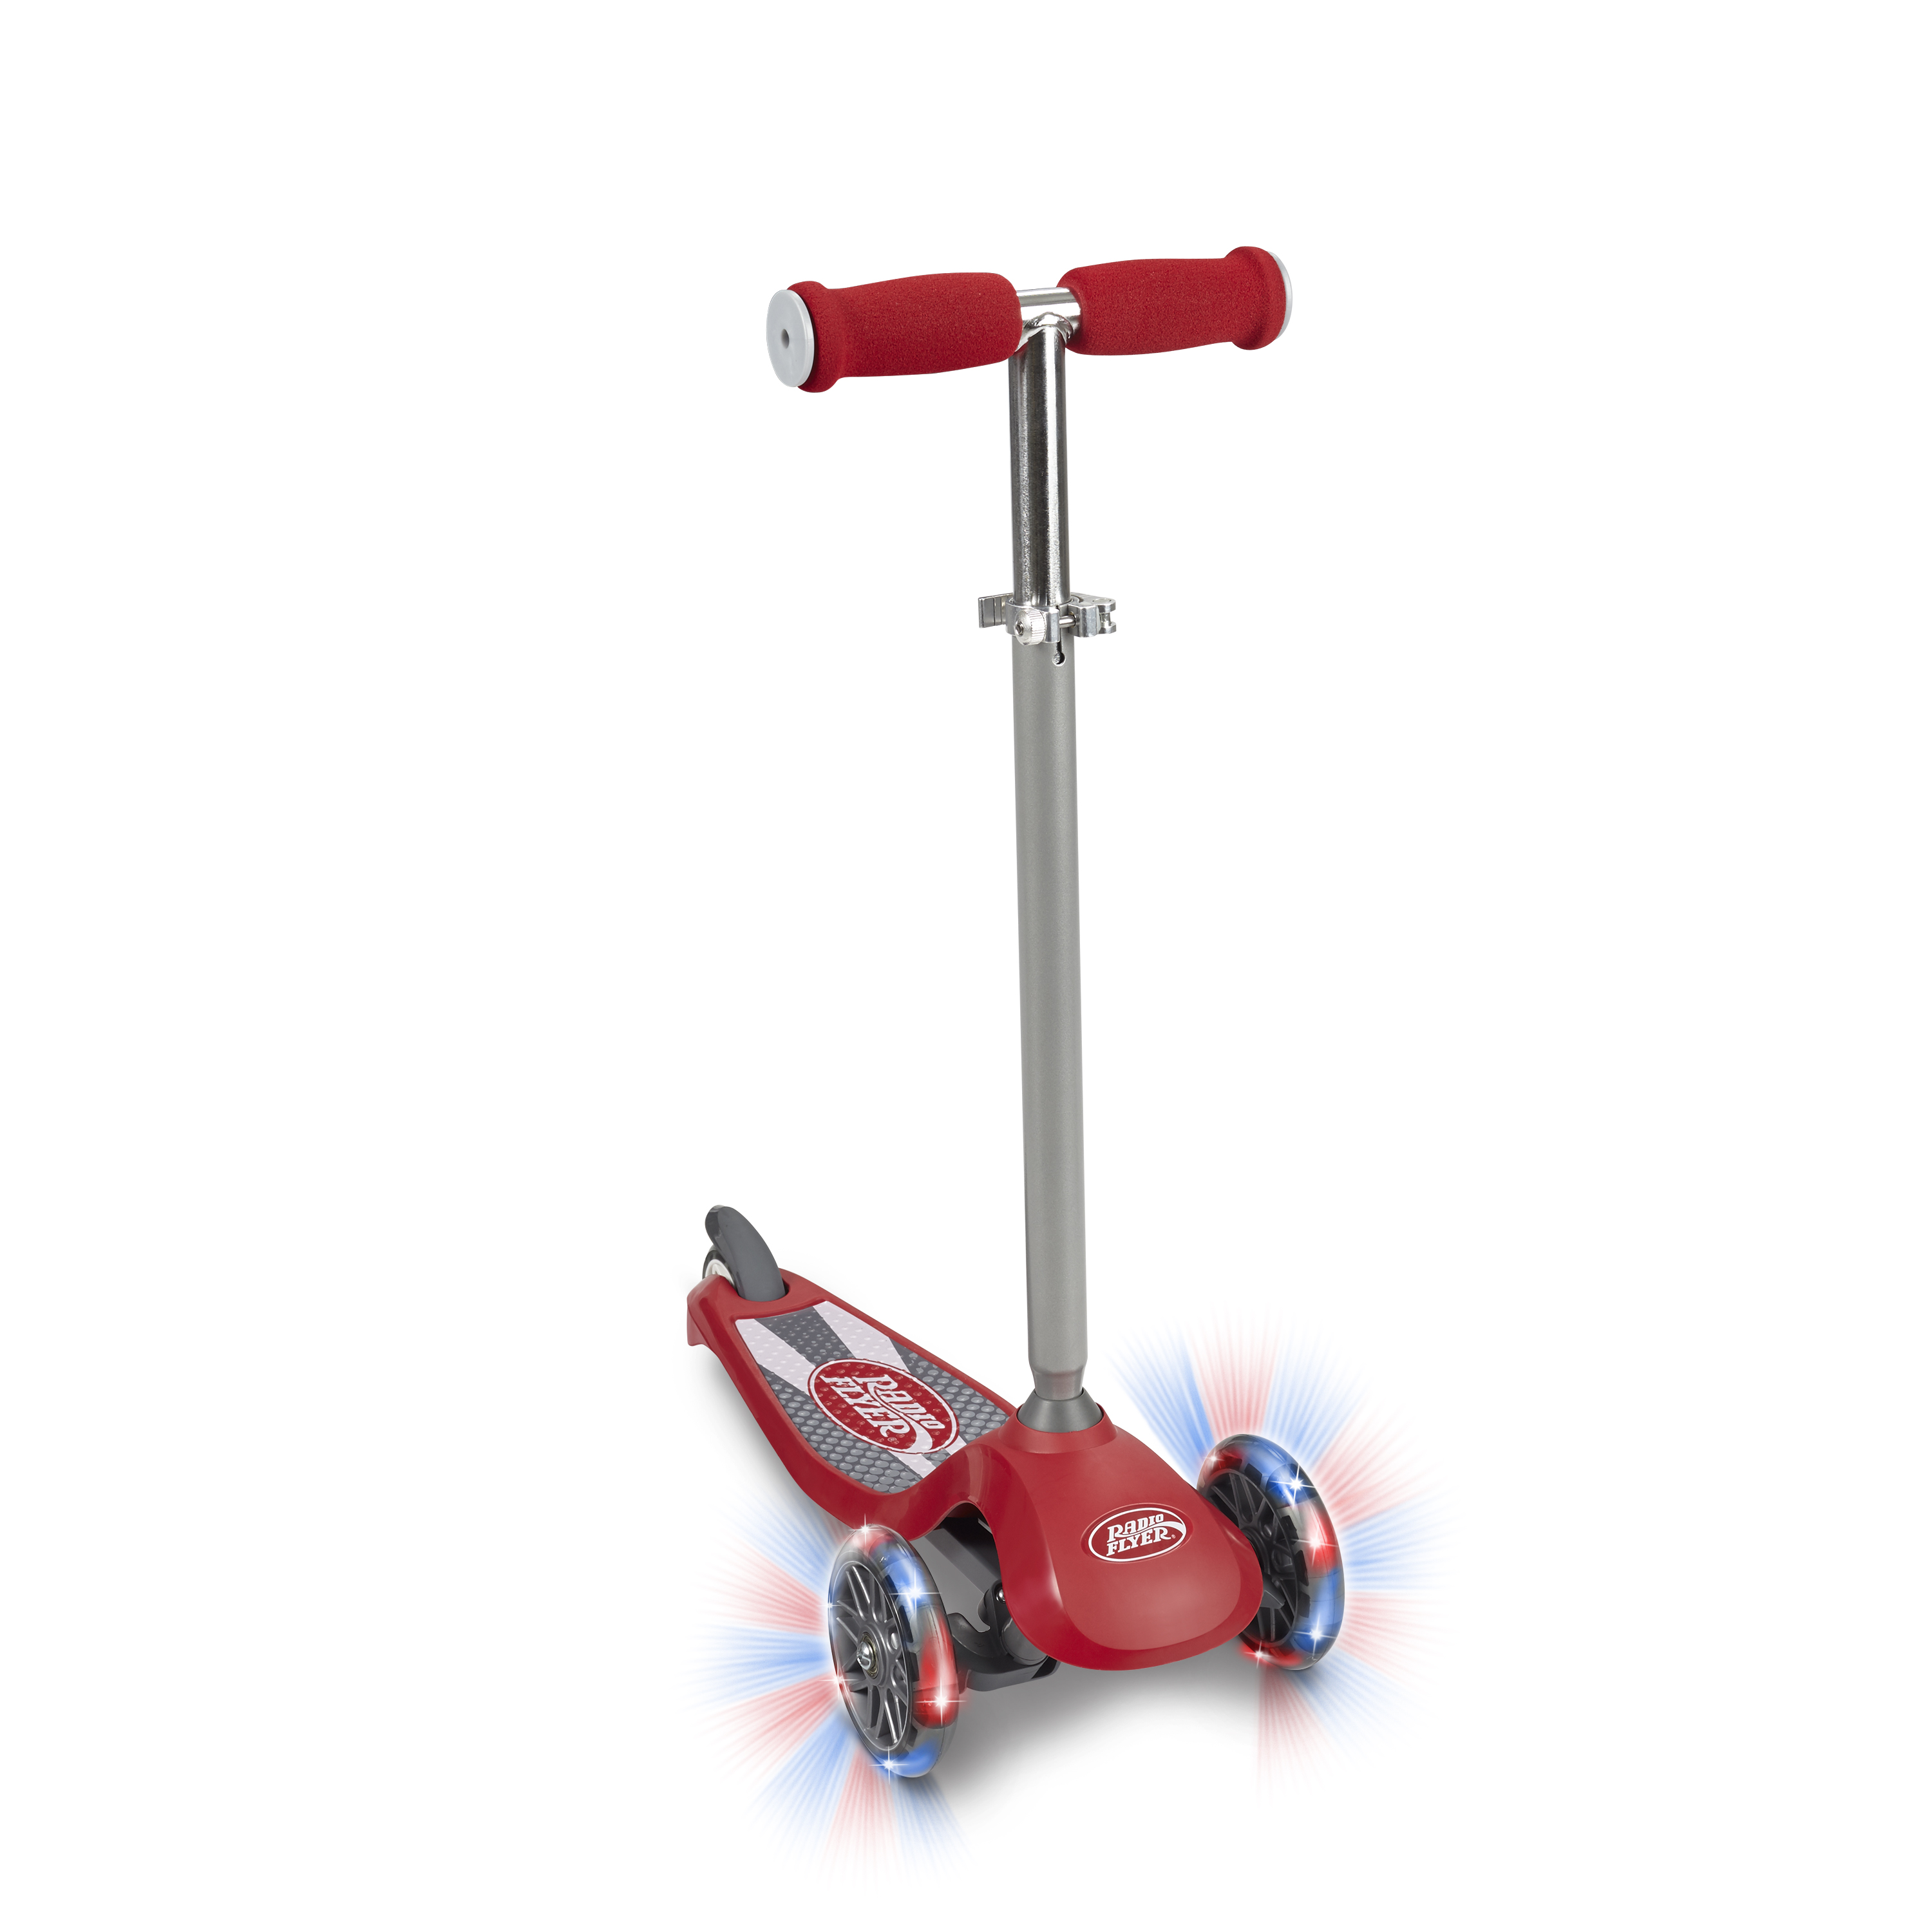 Radio Flyer Lean 'N Glide with Light-Up Wheels Scooter, Red by Radio Flyer Inc.